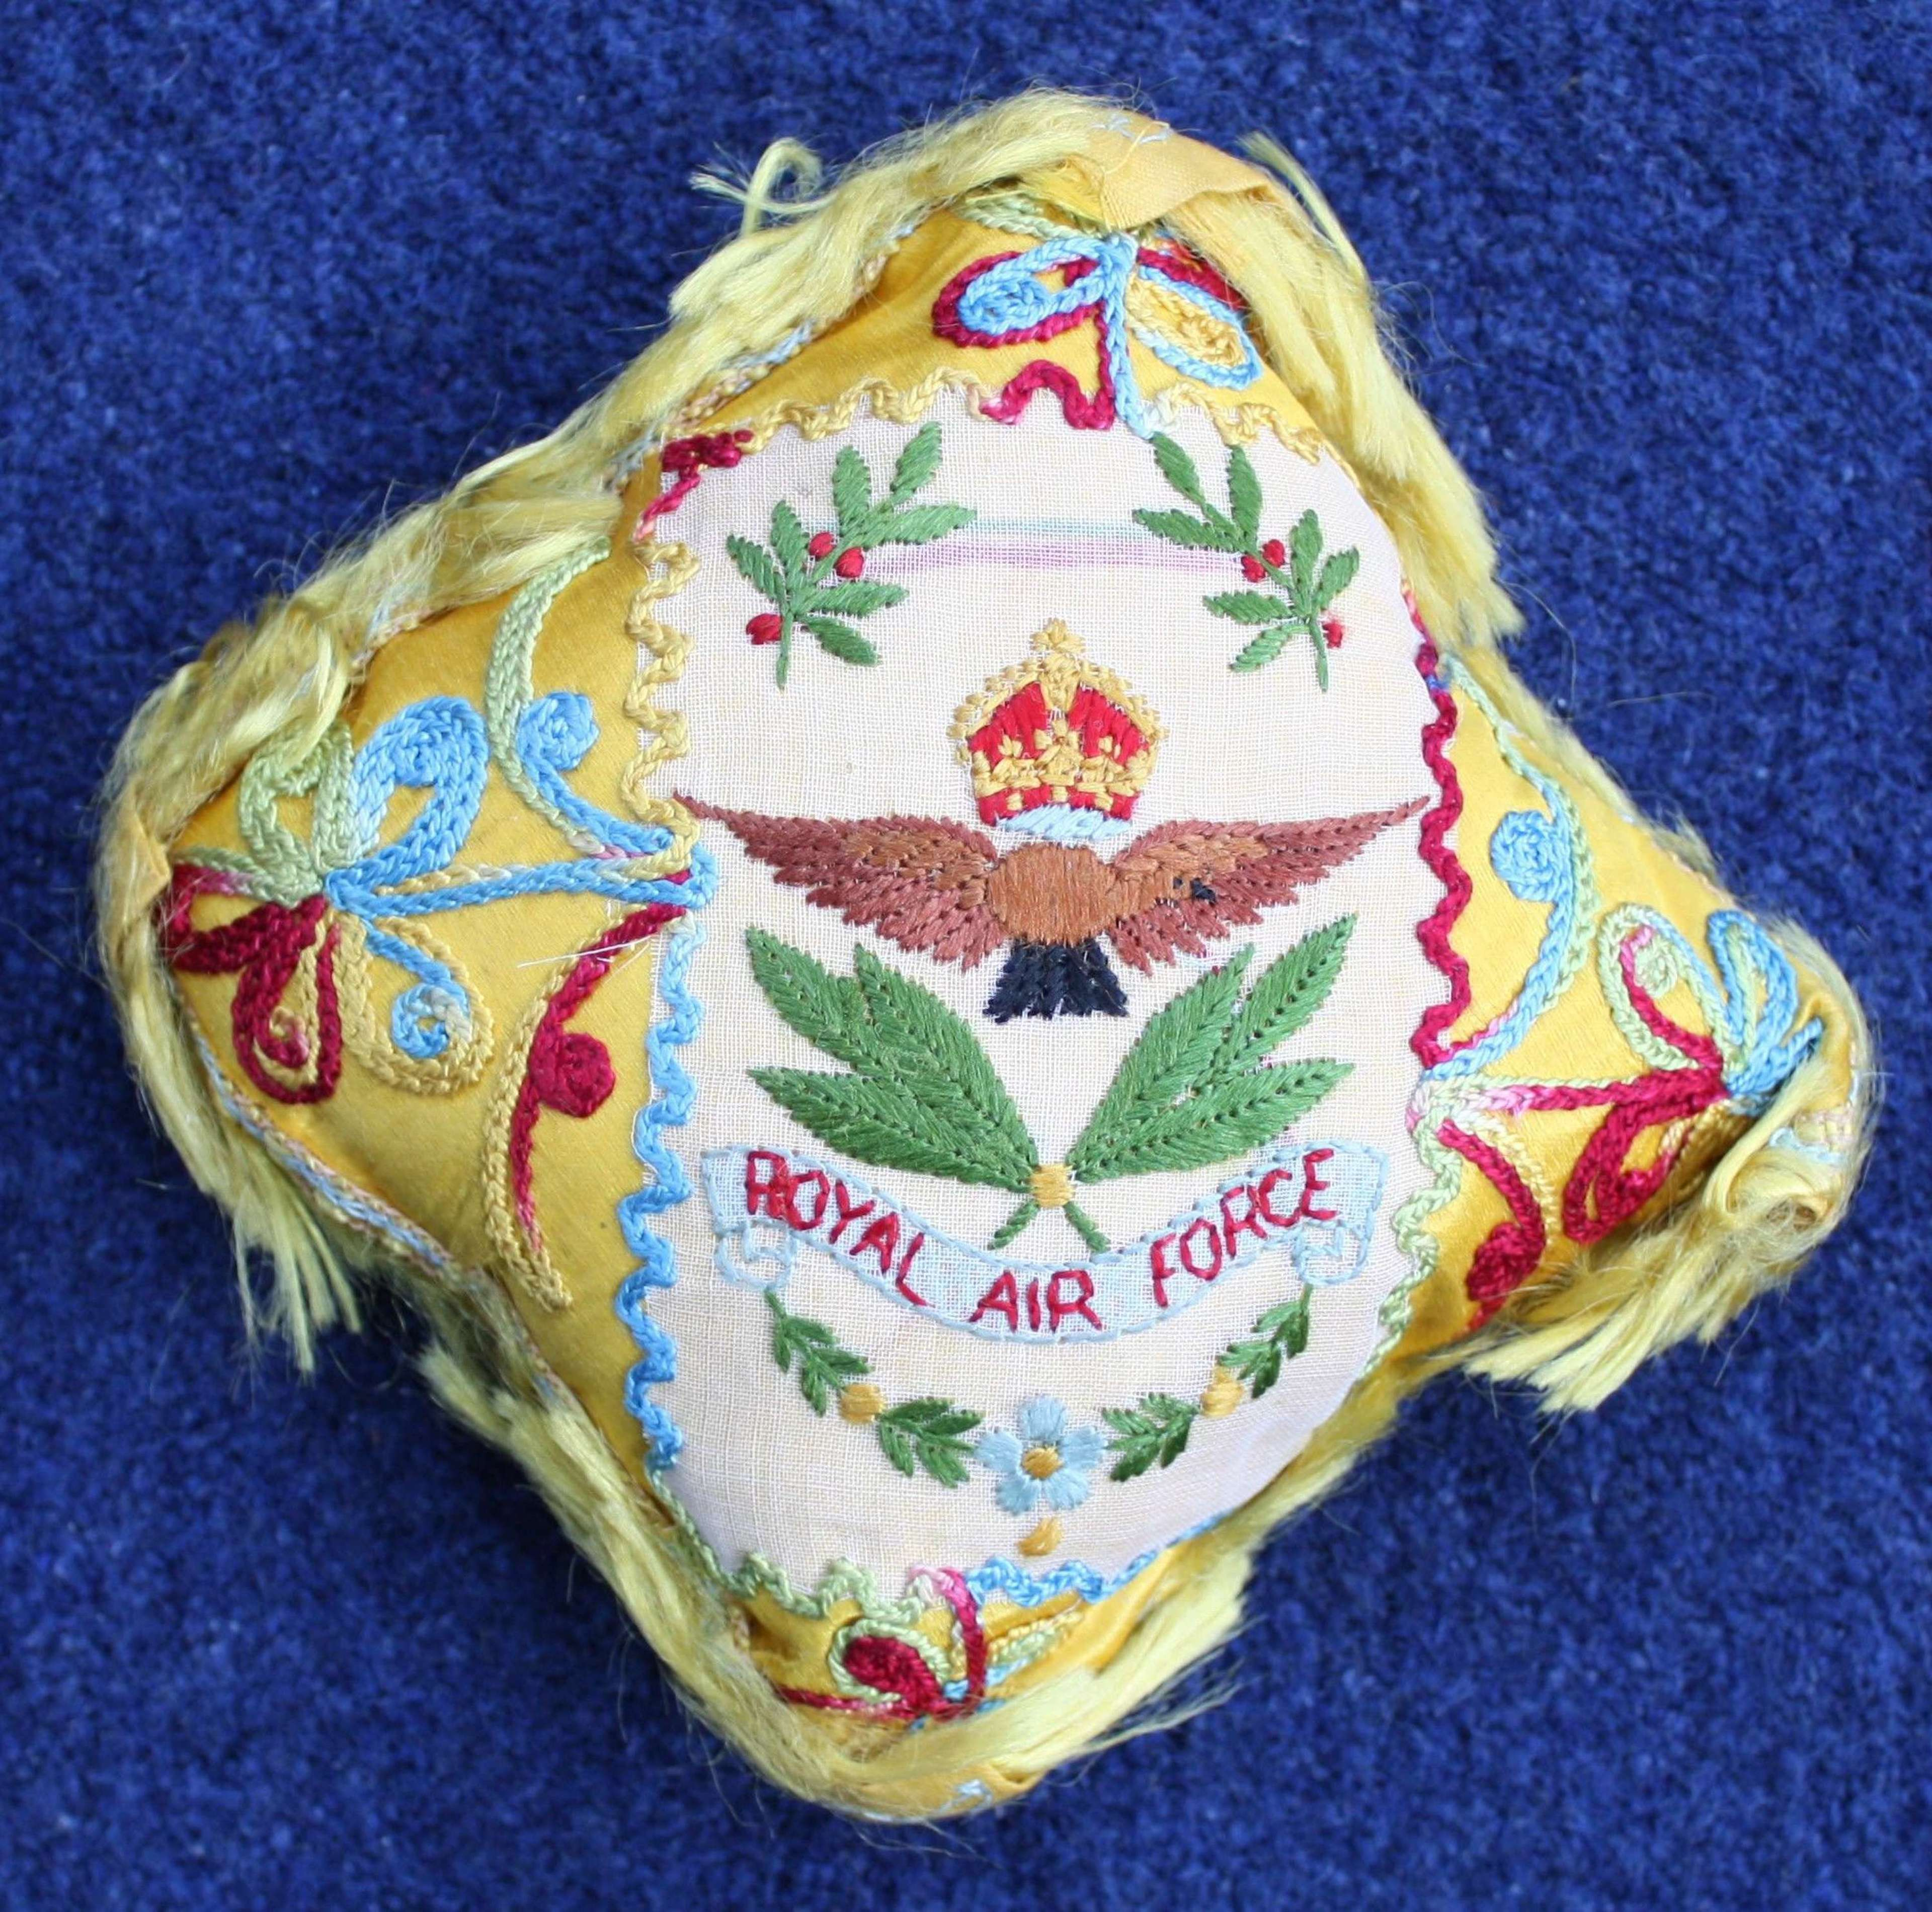 Late WW1 Royal Air Force Pin Cushion. Very Good Condition.